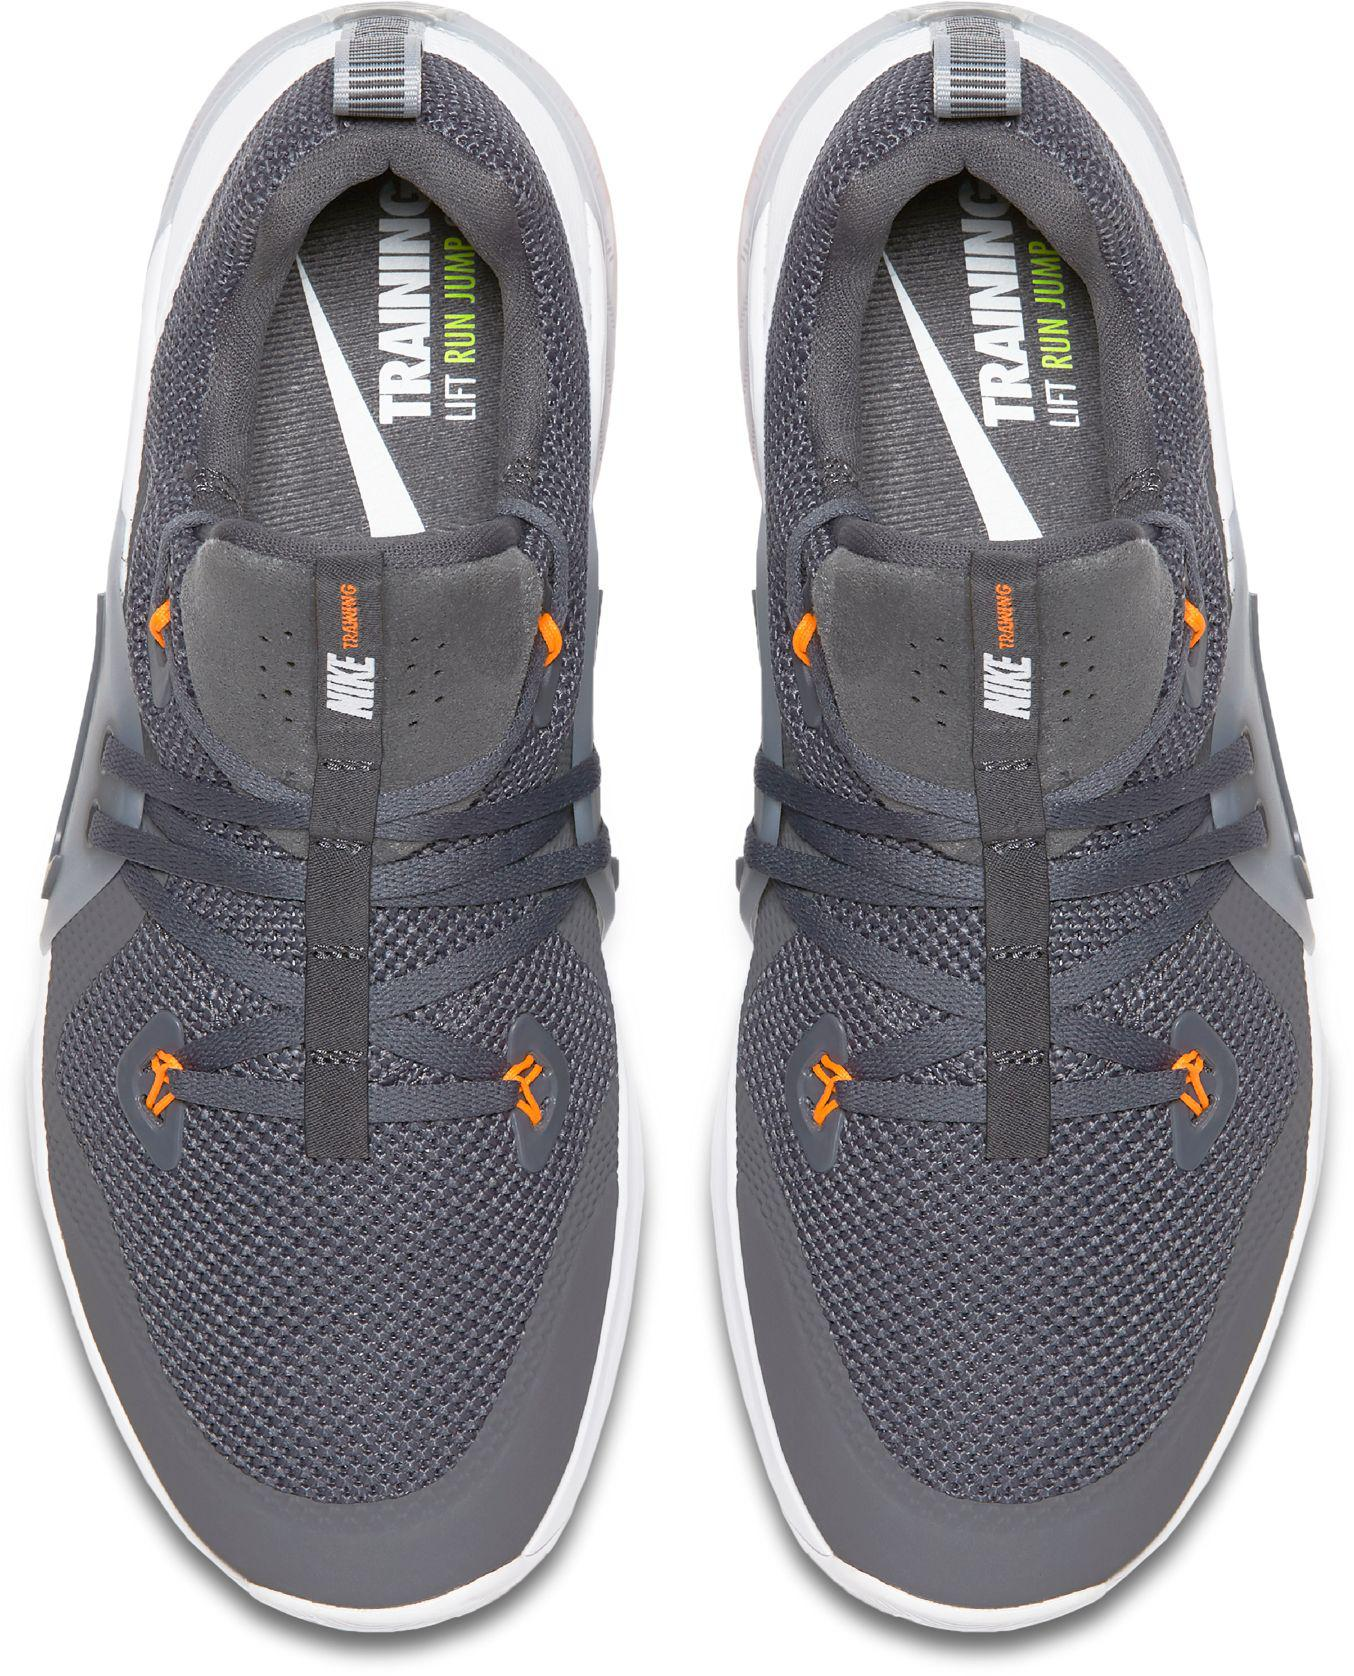 8b82507c9b61 Lyst - Nike Zoom Command Training Shoes in Gray for Men